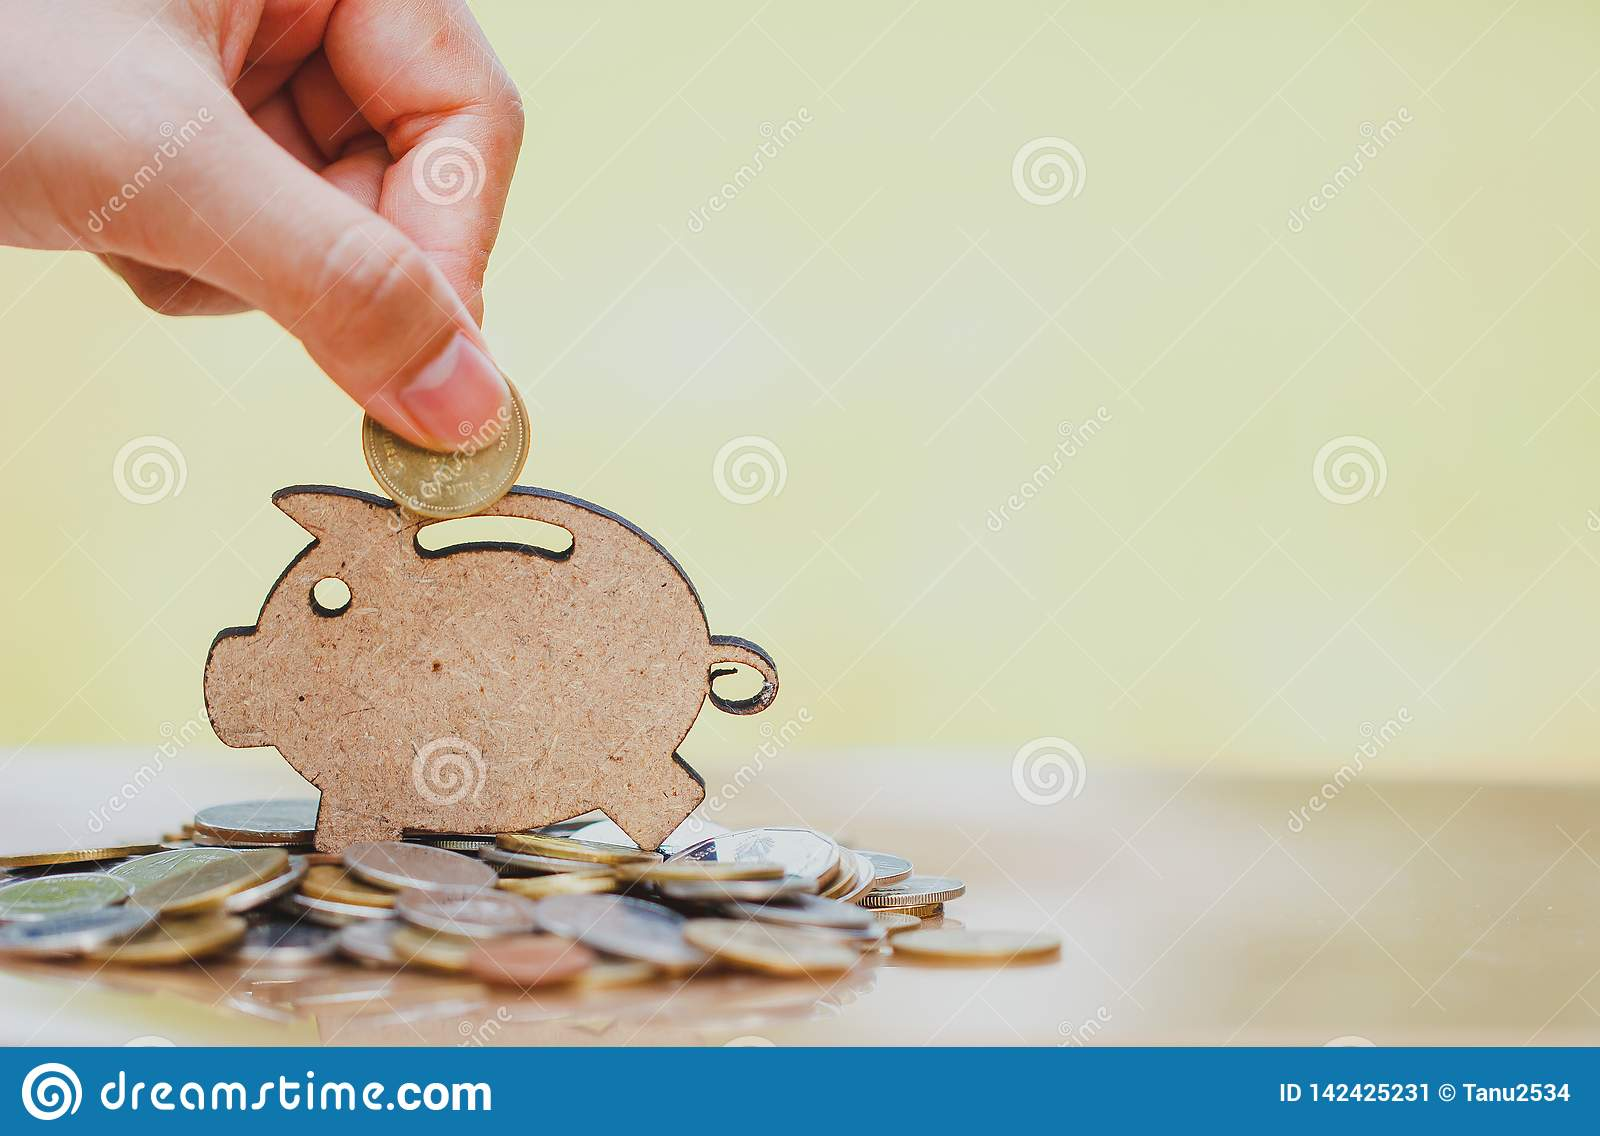 Female hand putting coin and stack of coins in concept of savings and money growing or energy save.